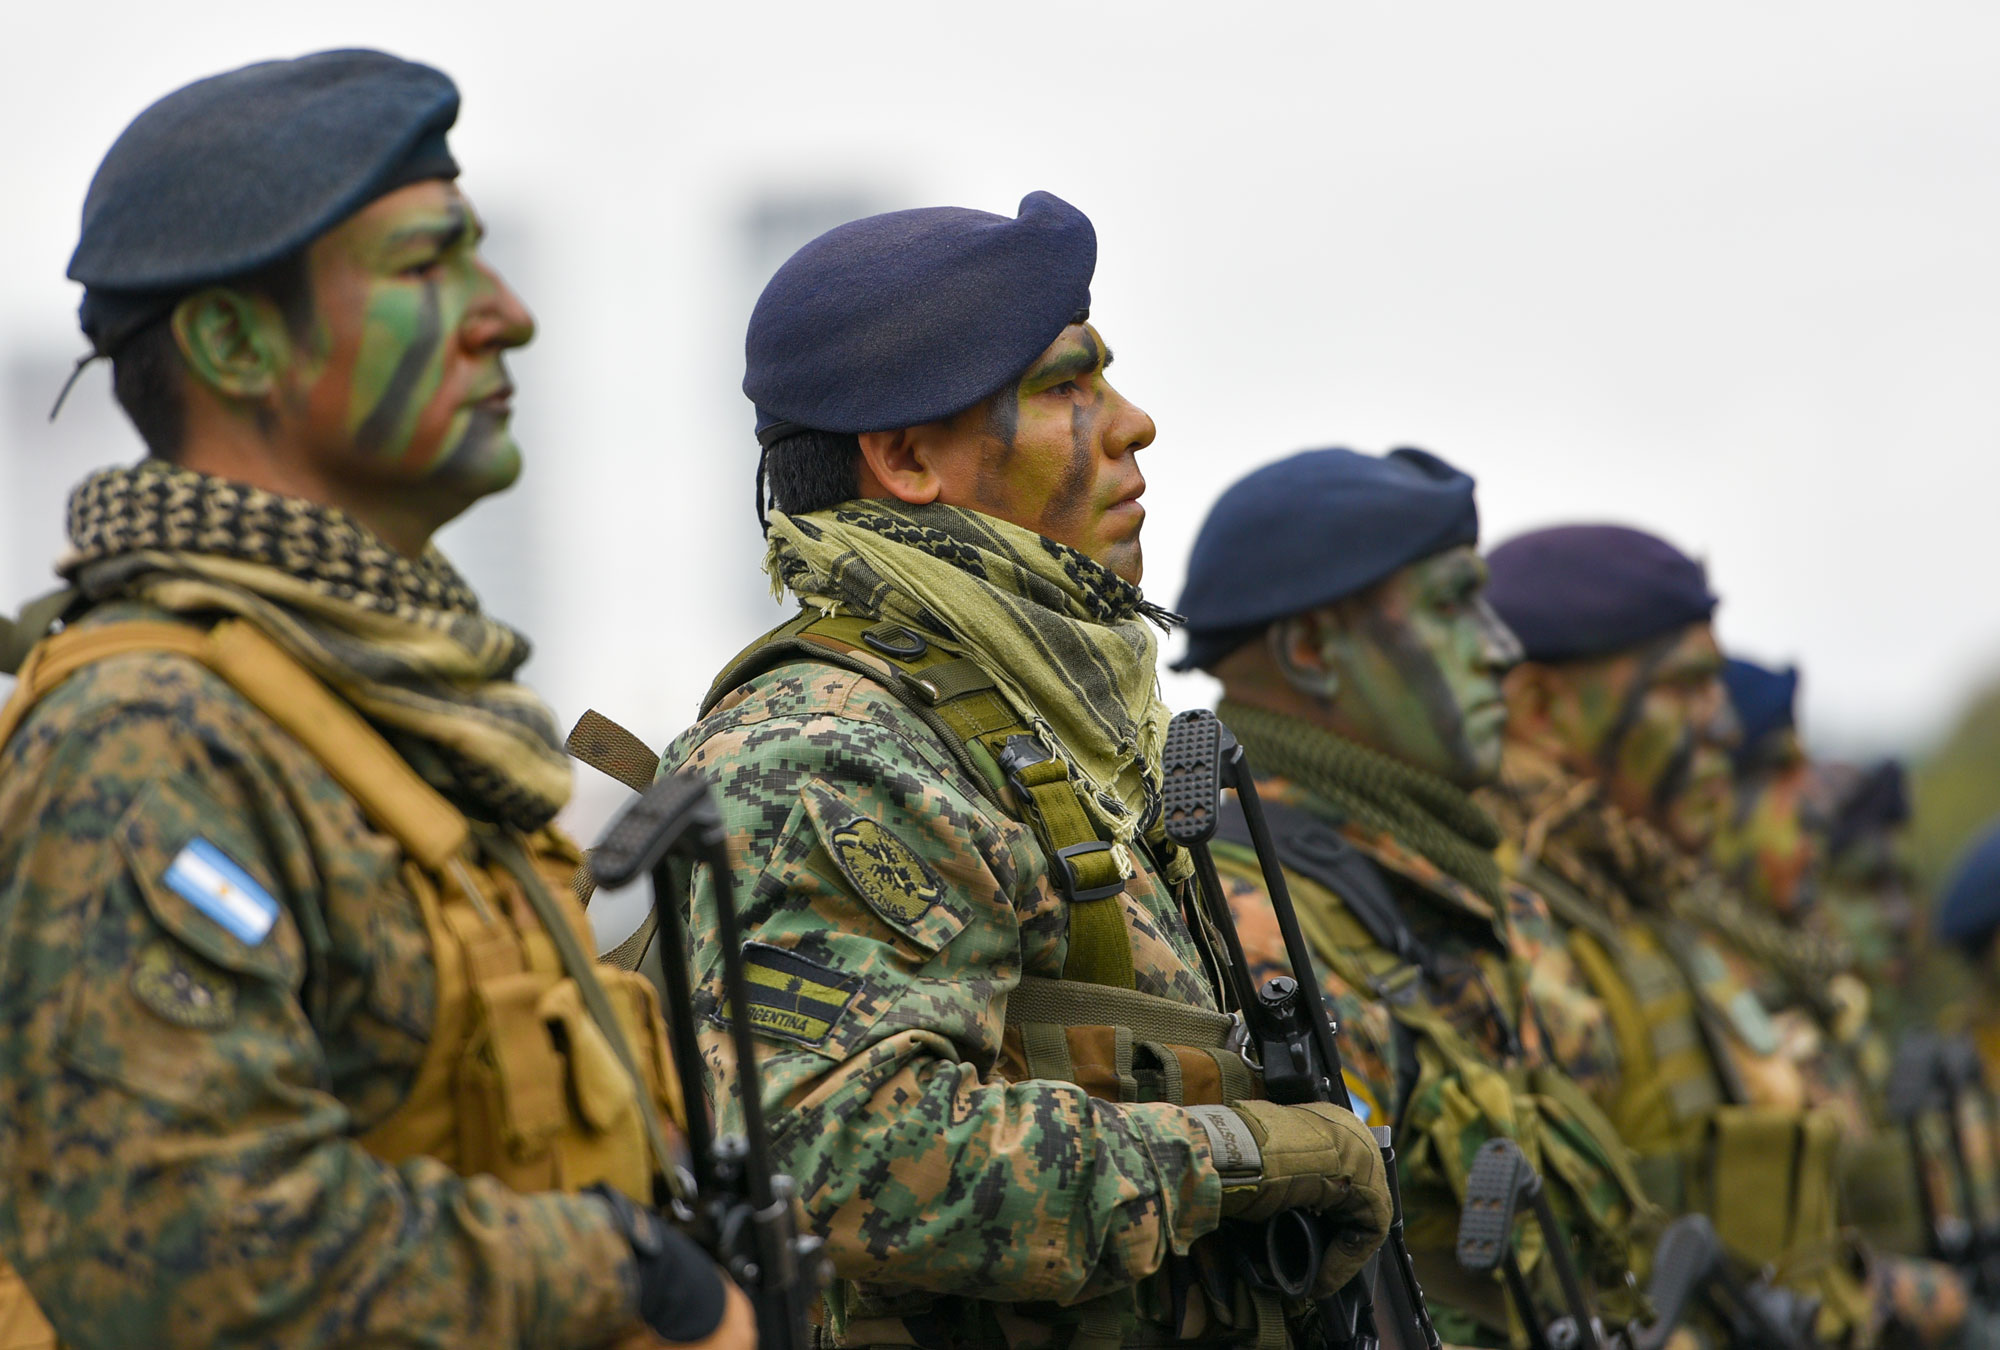 Military officers in Argentina